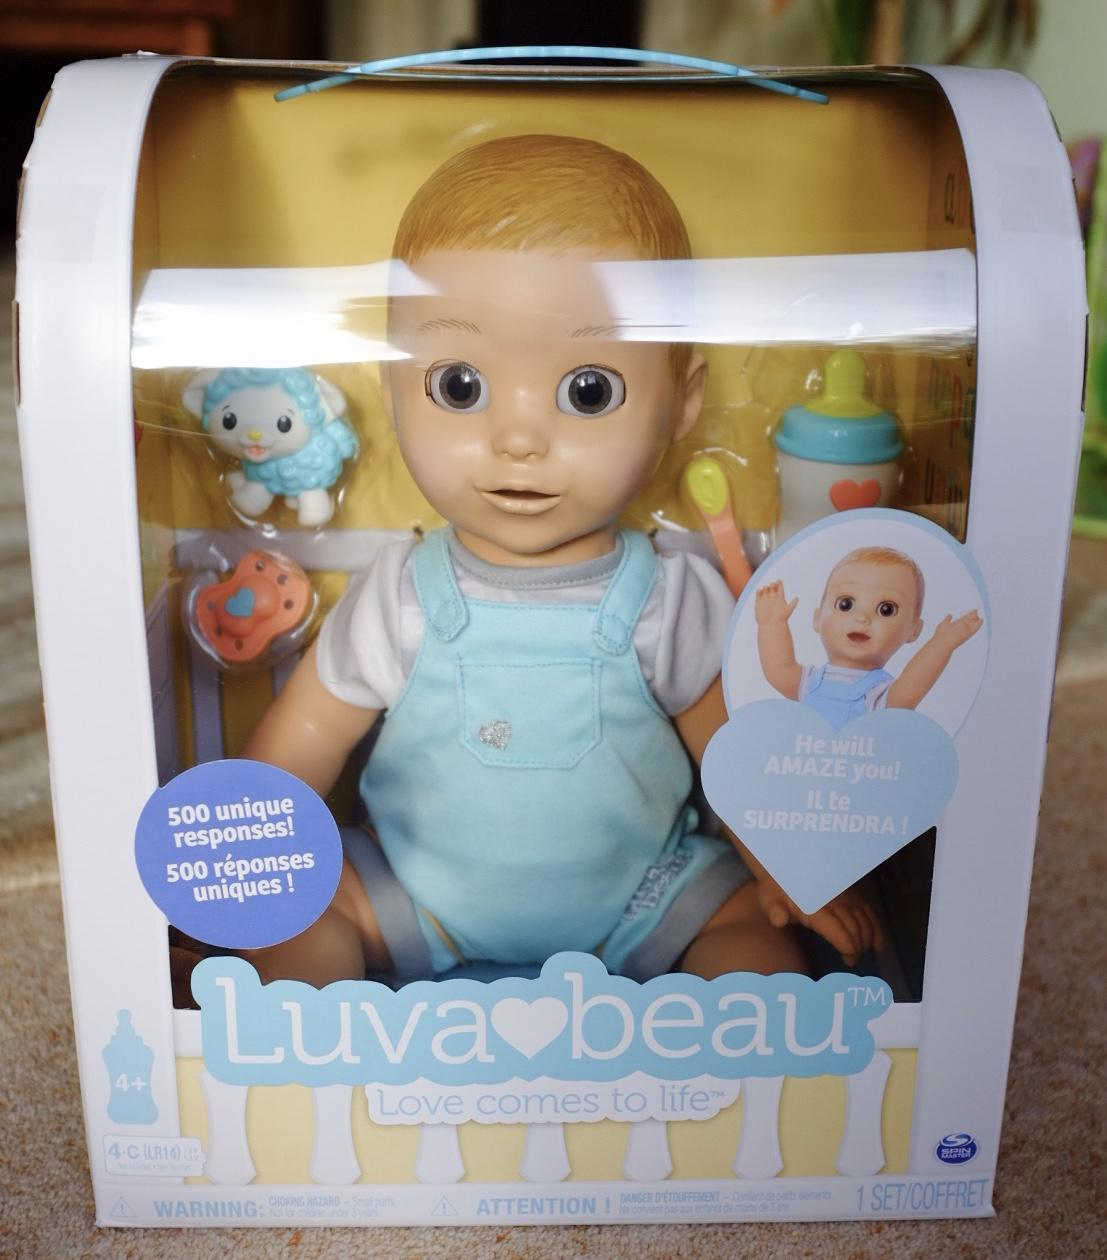 Luvabeau doll in the box